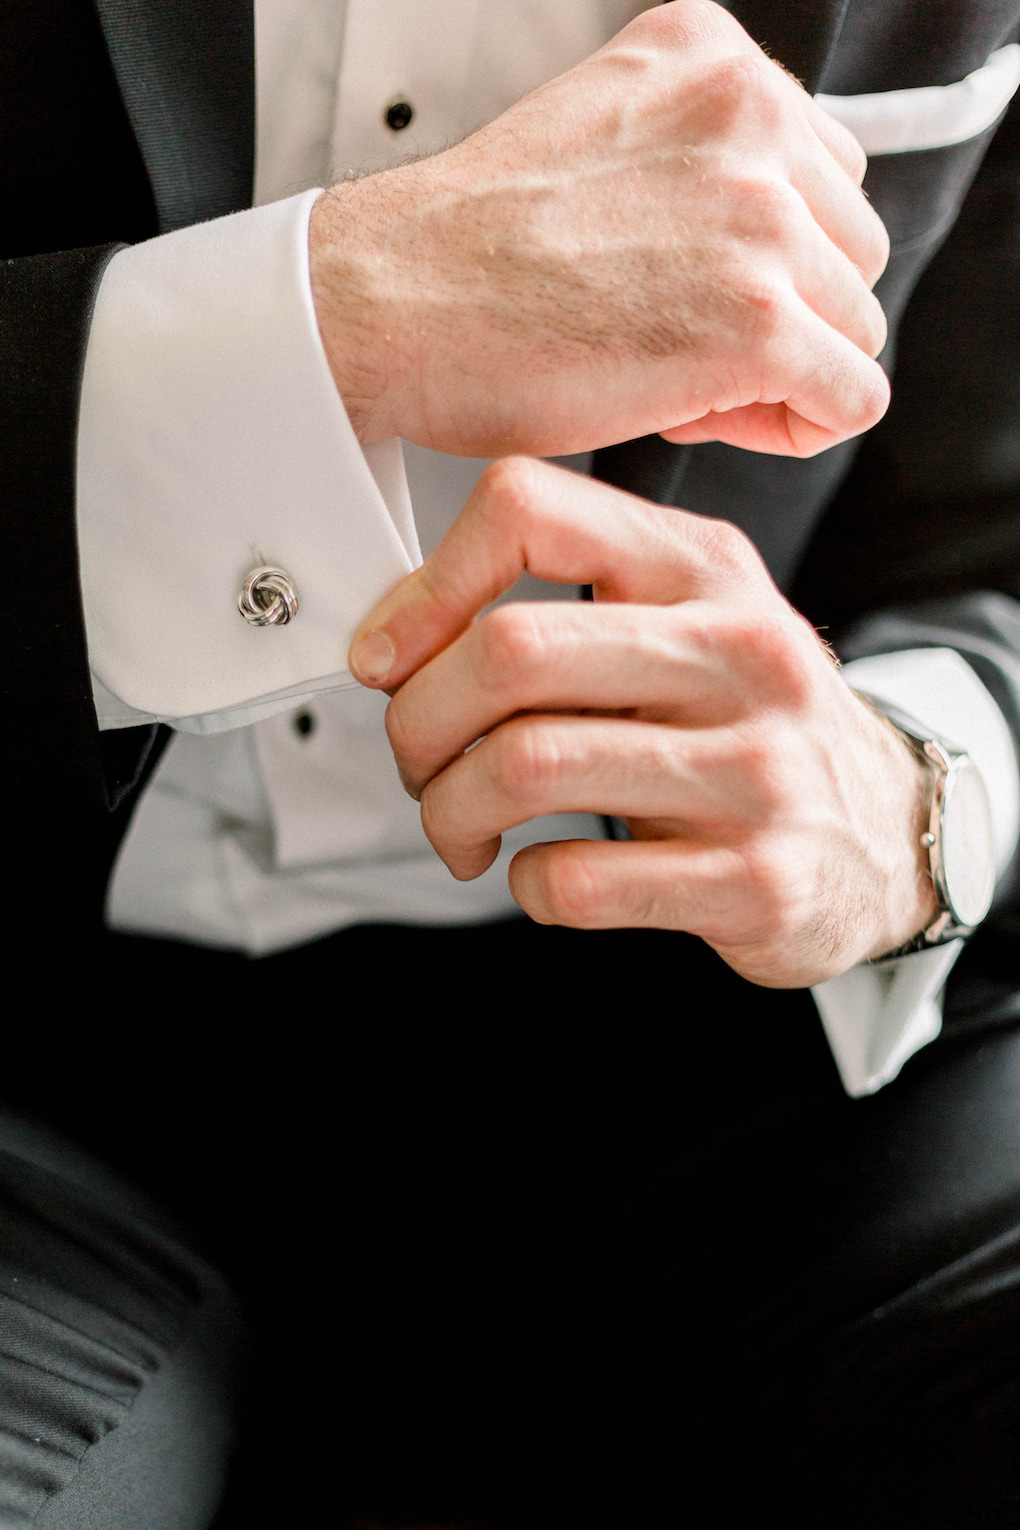 Grooms cufflinks: Romantic Fairytale wedding at the Omni William Penn in Pittsburgh, PA planned by Exhale Events. Find more wedding inspiration at exhale-events.com!